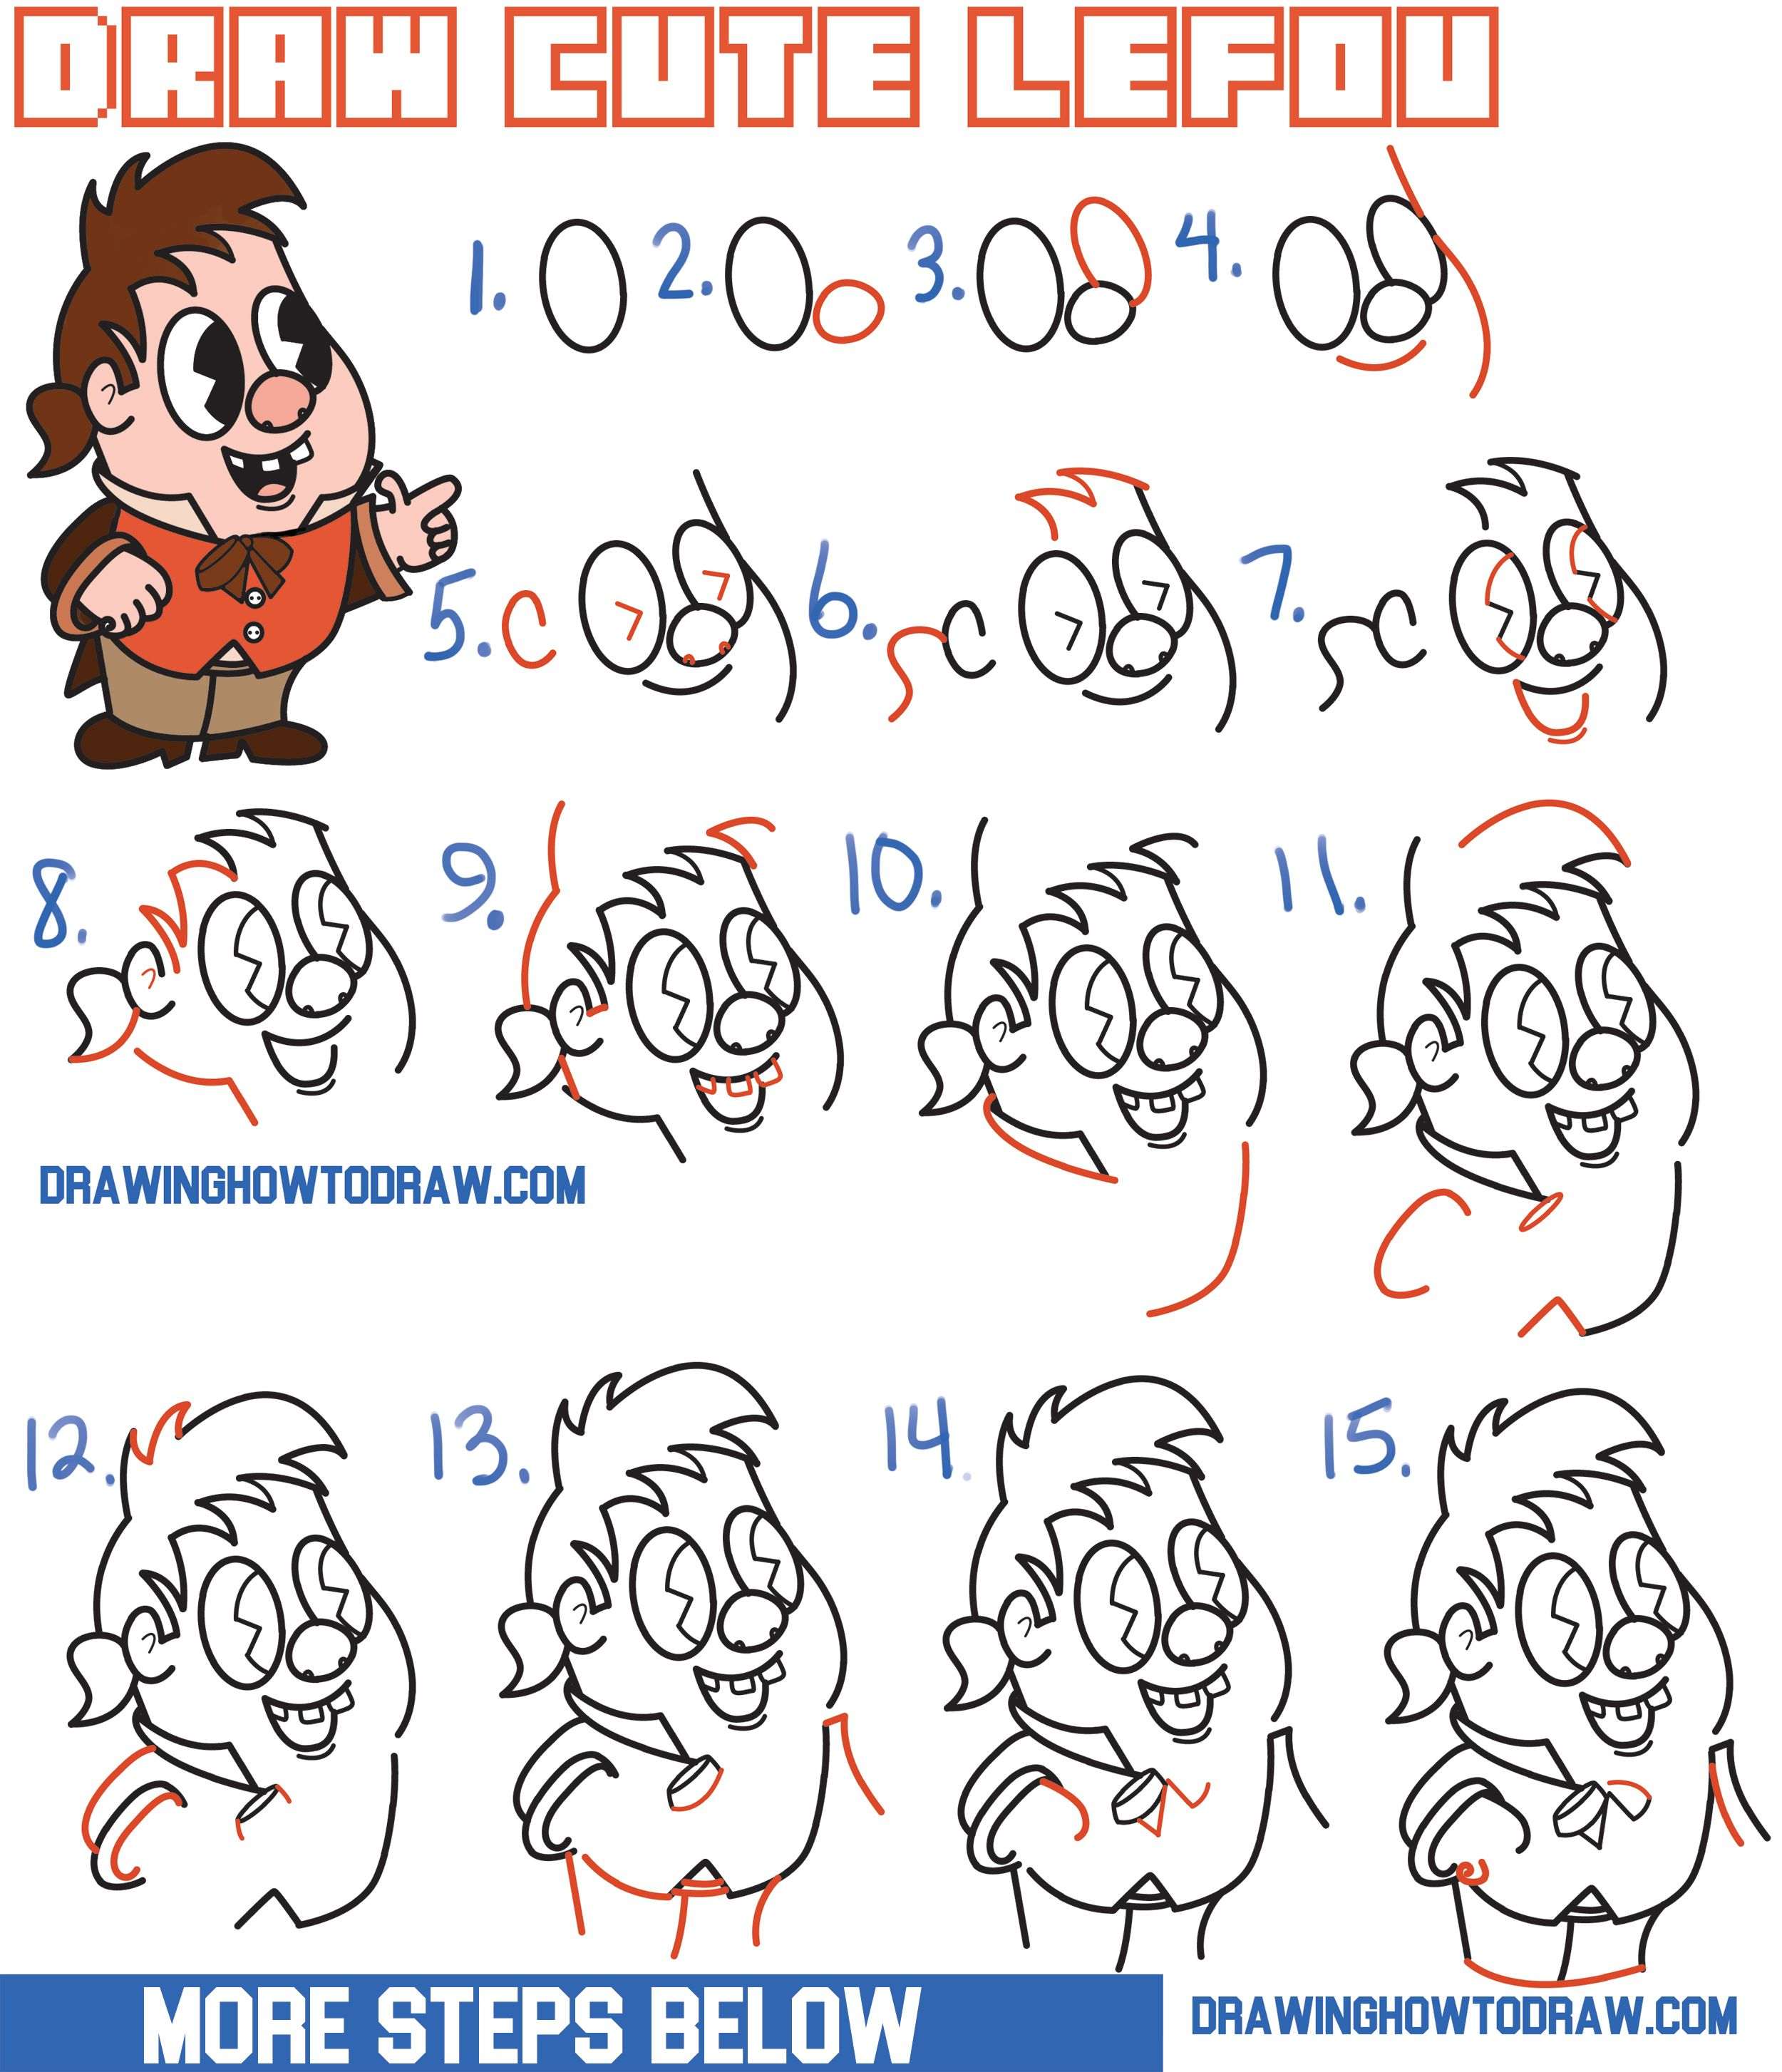 How To Draw Cute Kawaii Chibi LeFou From Beauty And The Beast Easy Step By